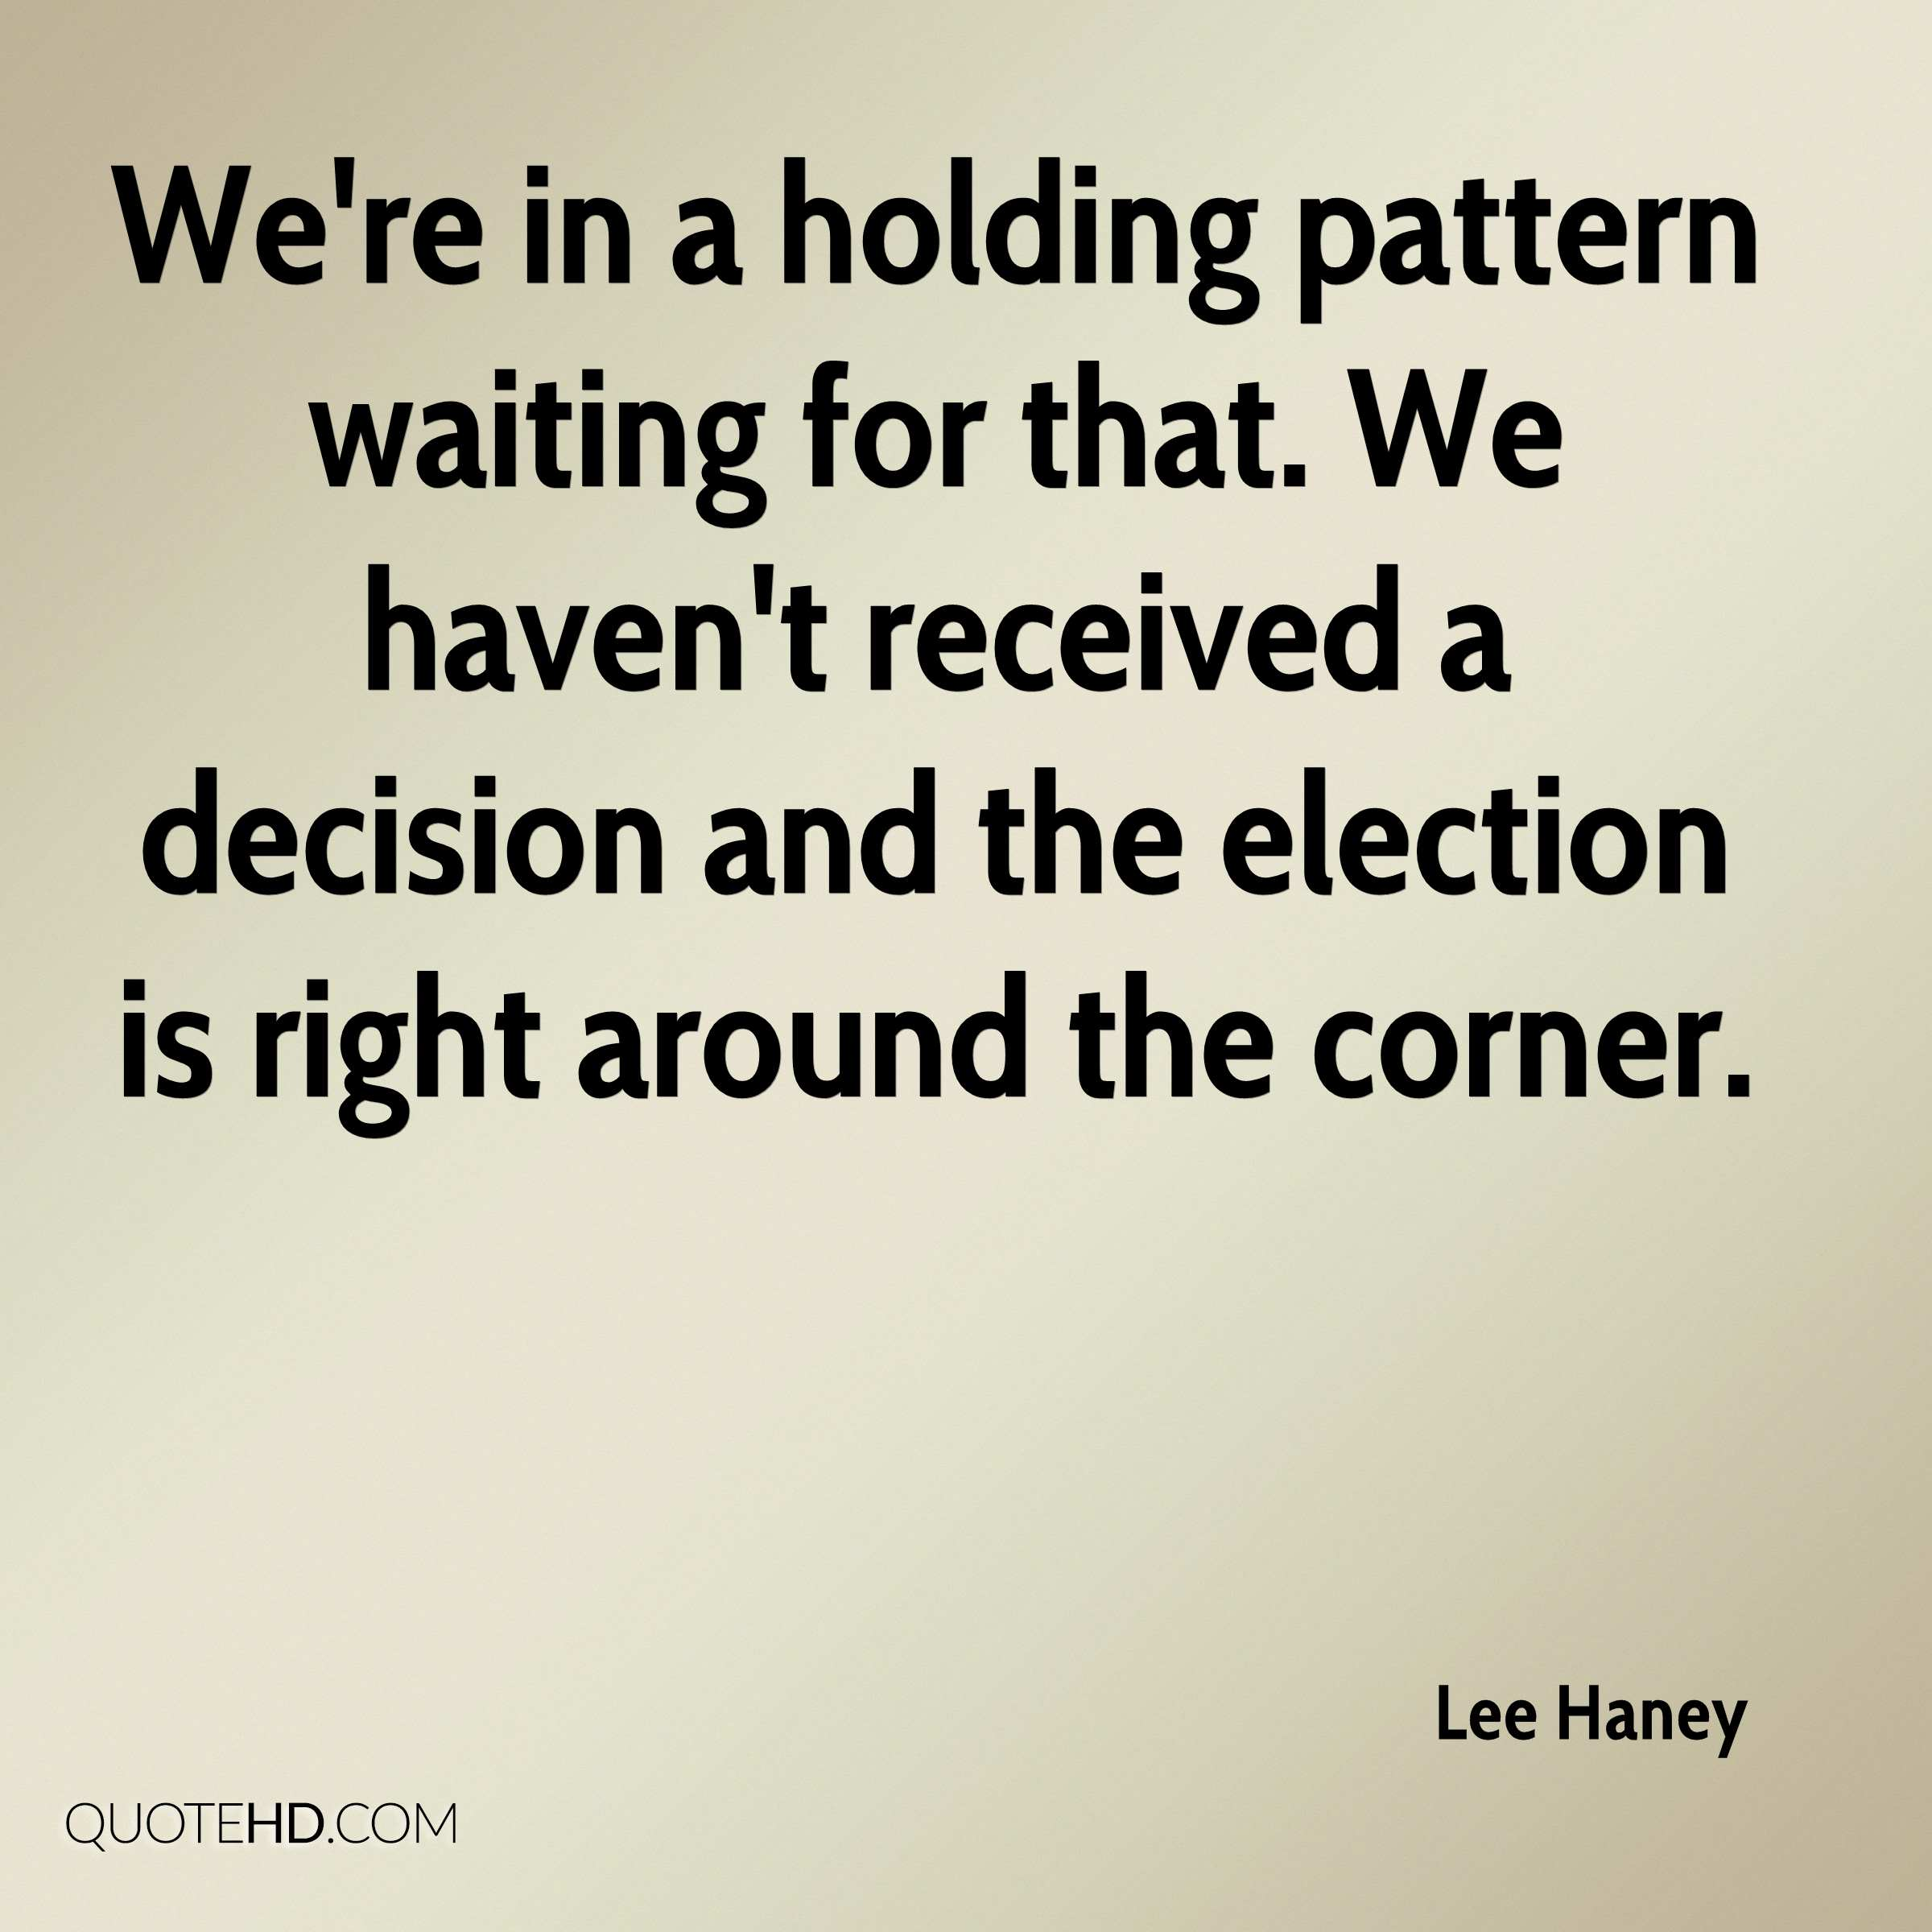 We're in a holding pattern waiting for that. We haven't received a decision and the election is right around the corner.